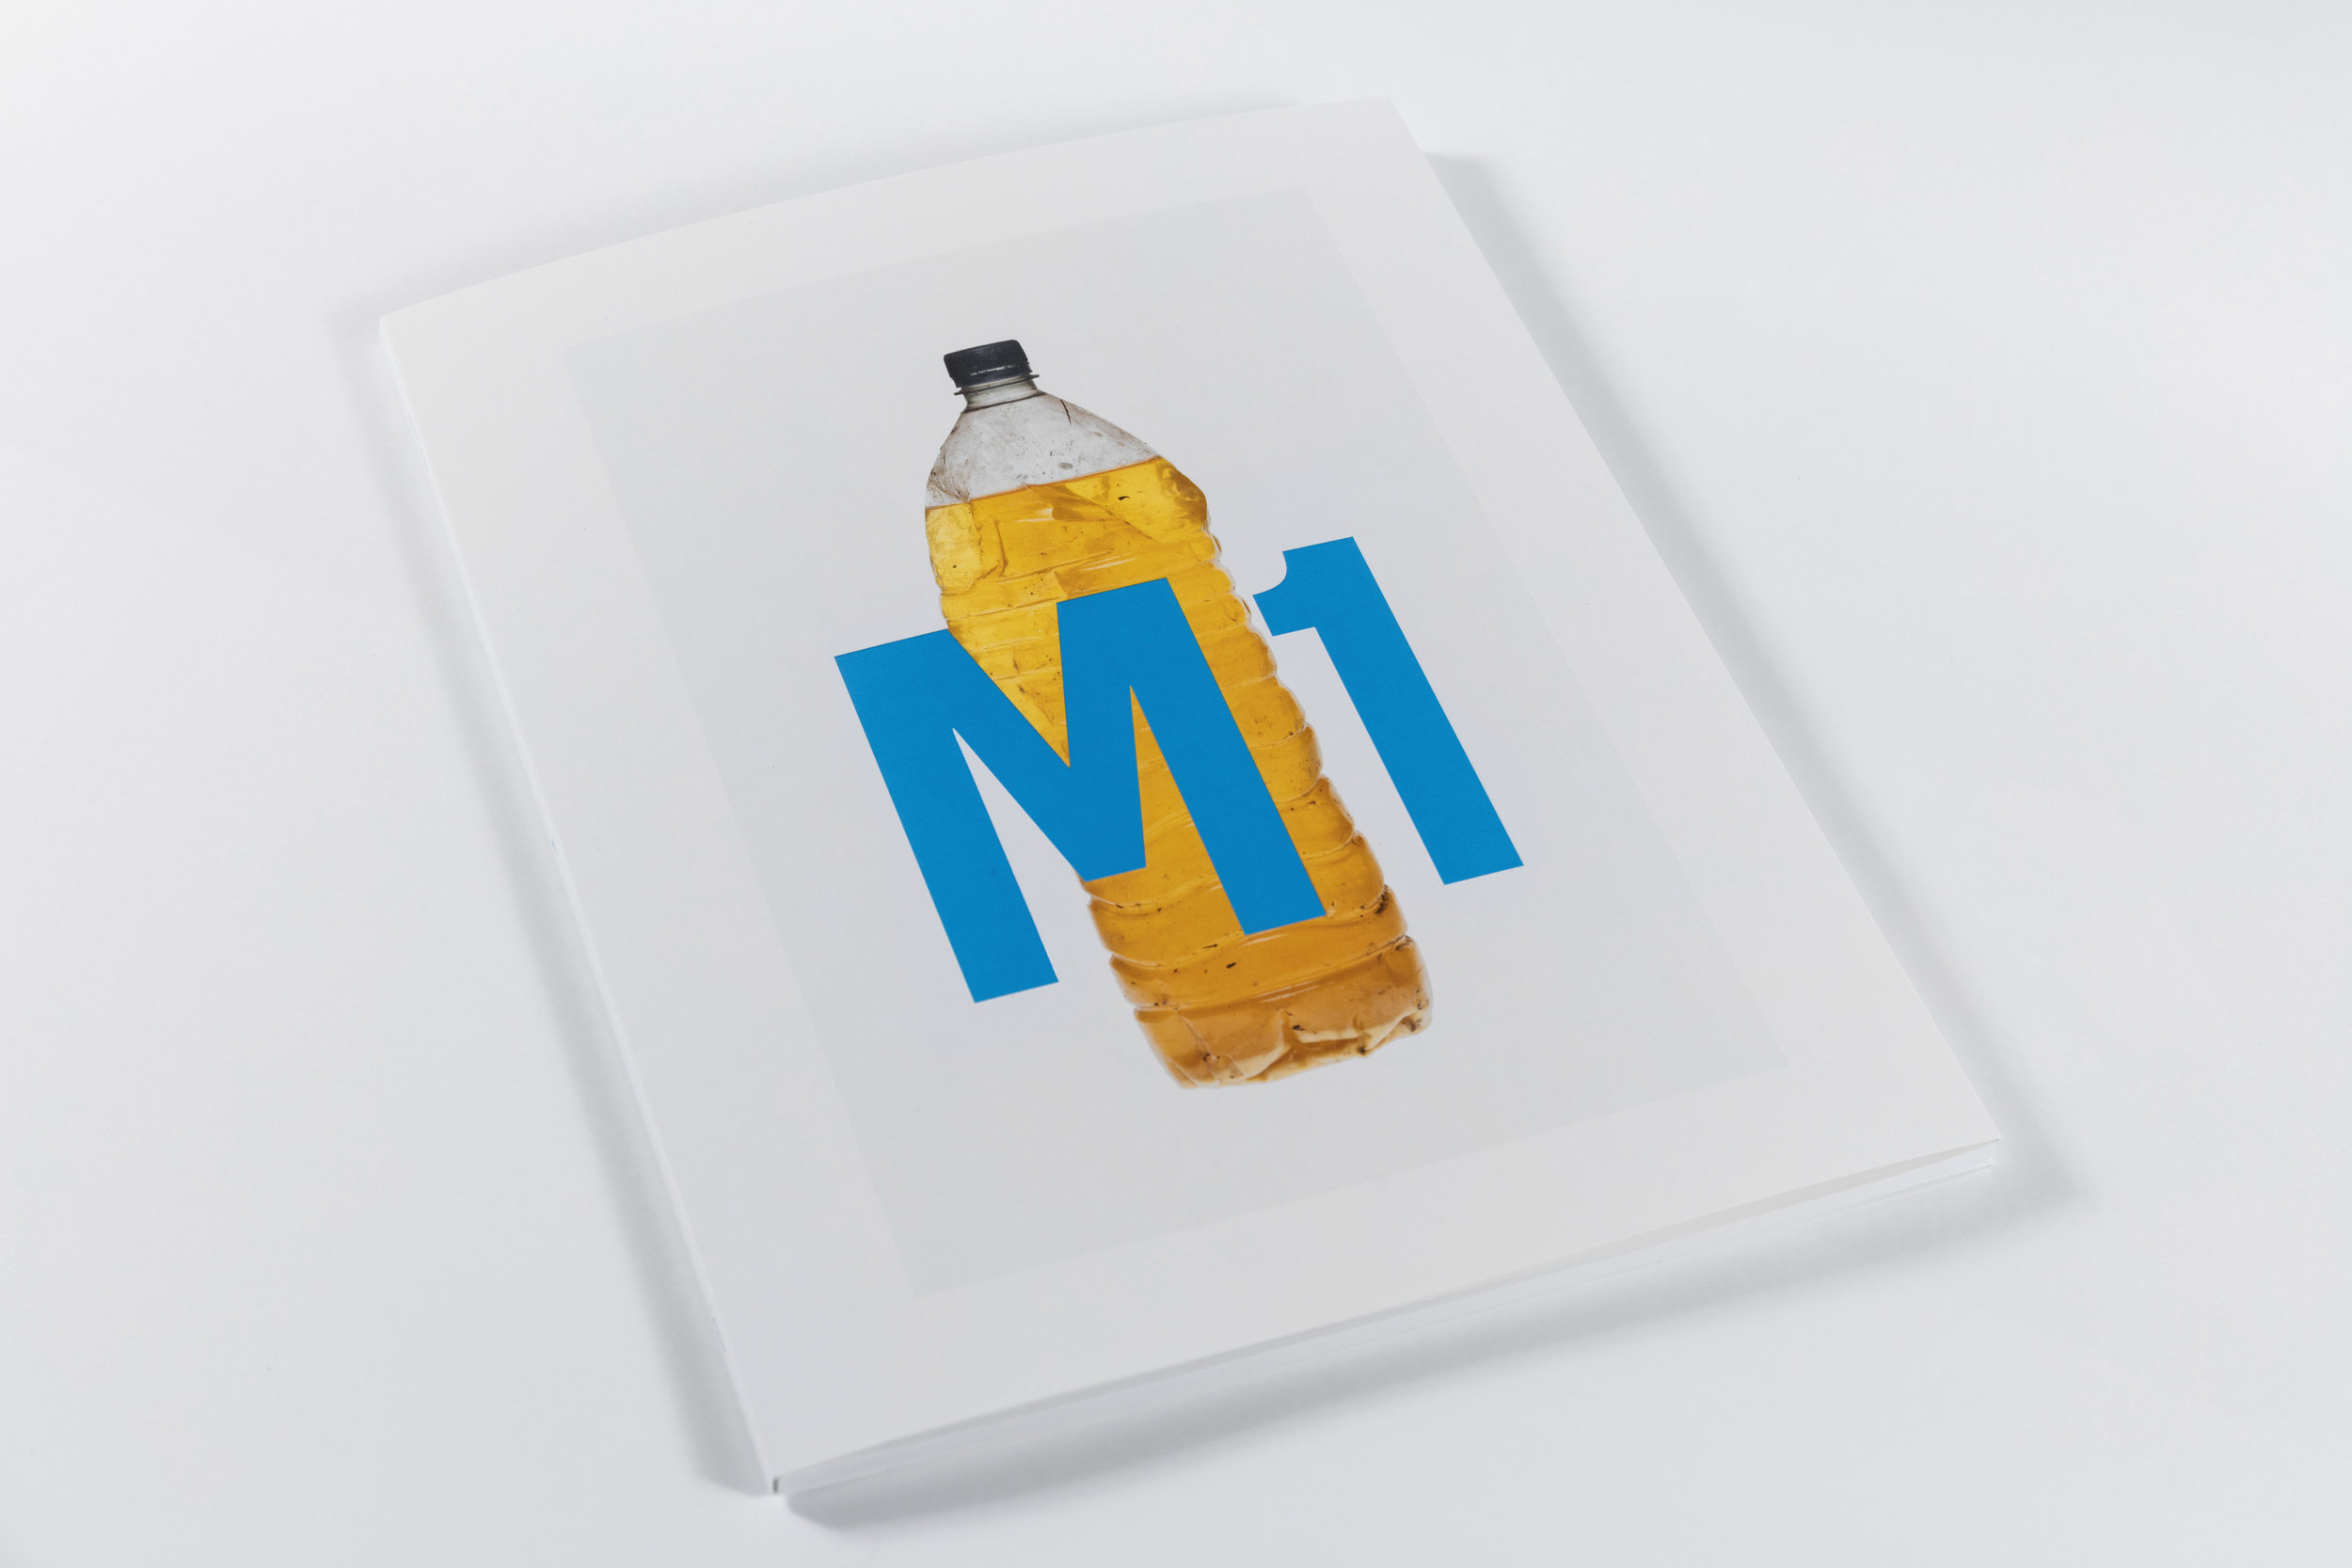 M1 - A travelogue narrated through bodily effluent. A motorway journey described in the call and response of the full bladder.A British road movie – Two Lane Blacktop and Wild At Heart reduced to a trail of piss-filled plastic bottles.Book Title - M156 pp / 320 x 240mmLitho 4-colour processEmbossed cover titleFold out 8 page softcoverOpen spine - Swiss bindingMatt coated art paper.LTD edition of 300 (signed copies)Published by AuditFirst printing April 2018ISBN 978-1-5272-1788-1